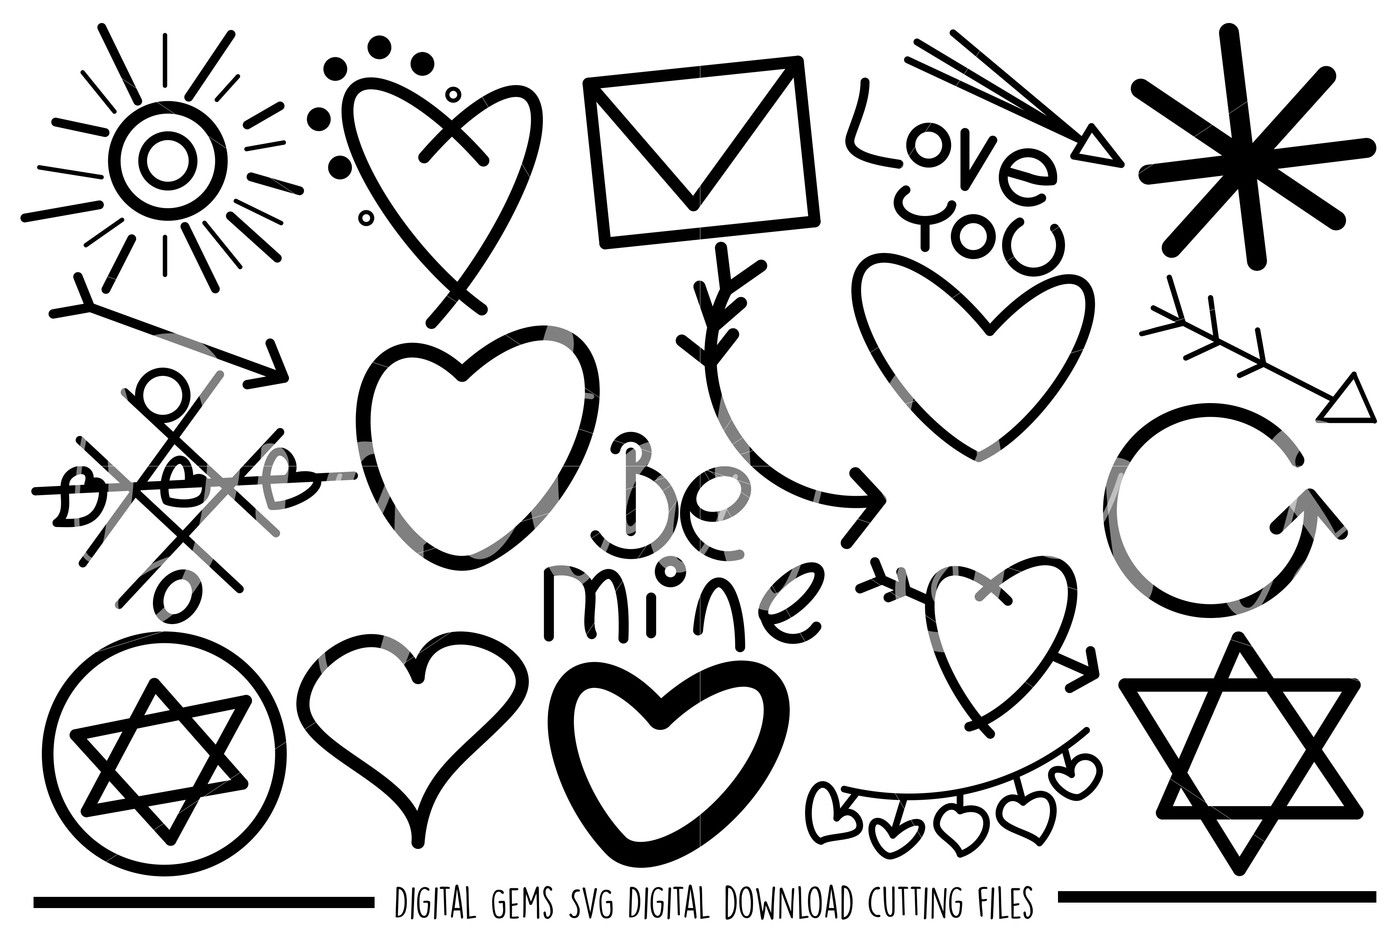 Doodle, Hand Drawn SVG / DXF / PNG Files By Digital Gems